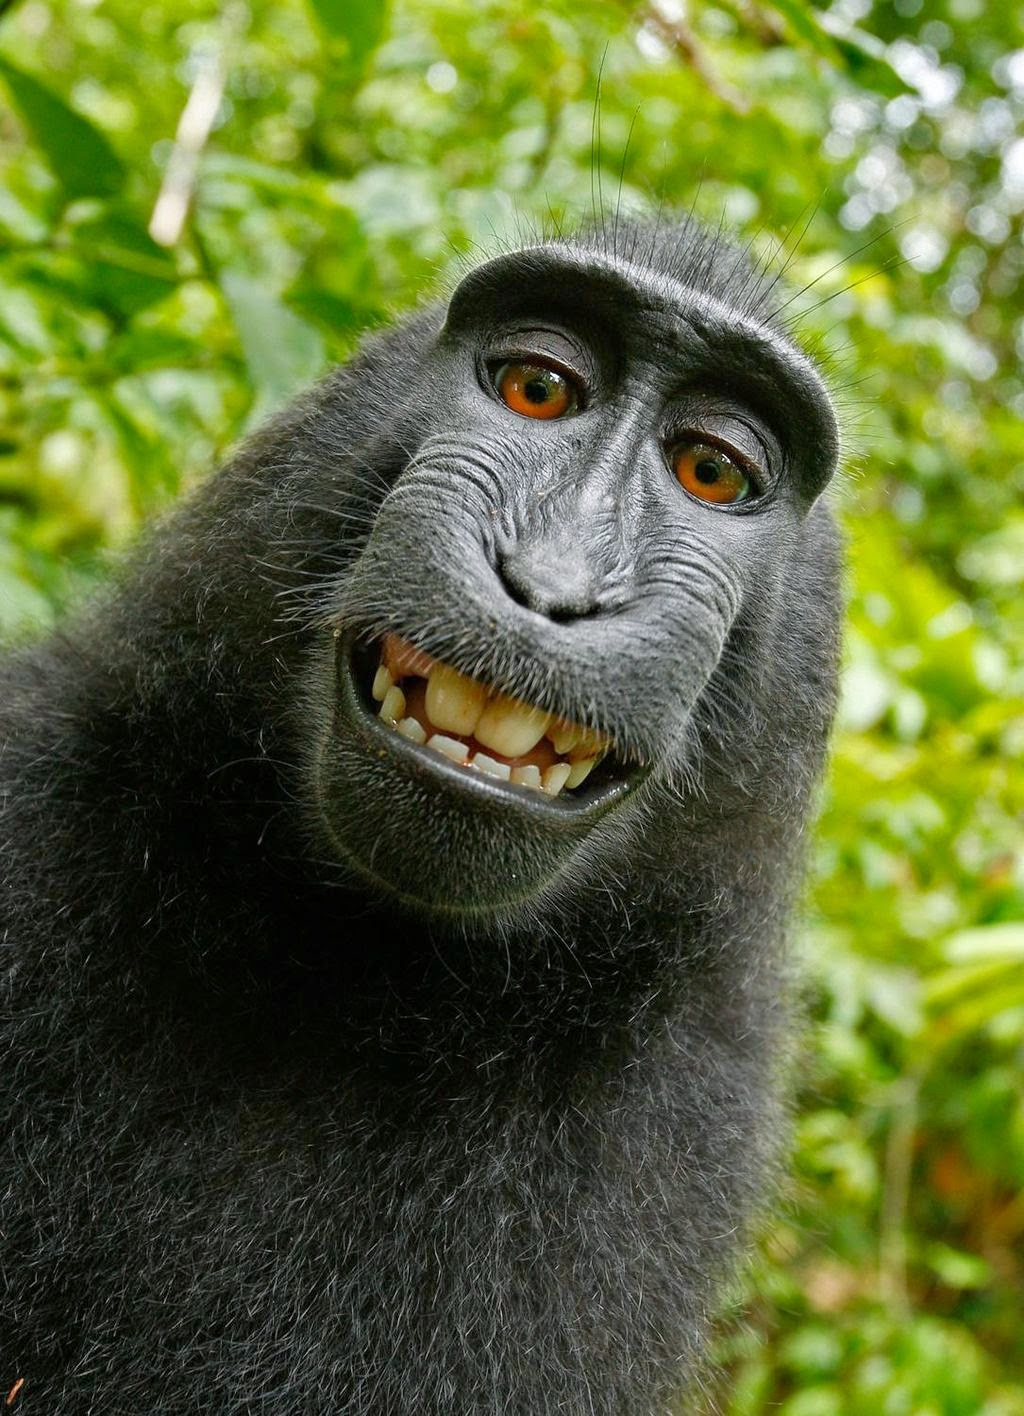 http://www.telegraph.co.uk/technology/news/11015672/Wikipedia-refuses-to-delete-photo-as-monkey-owns-it.html